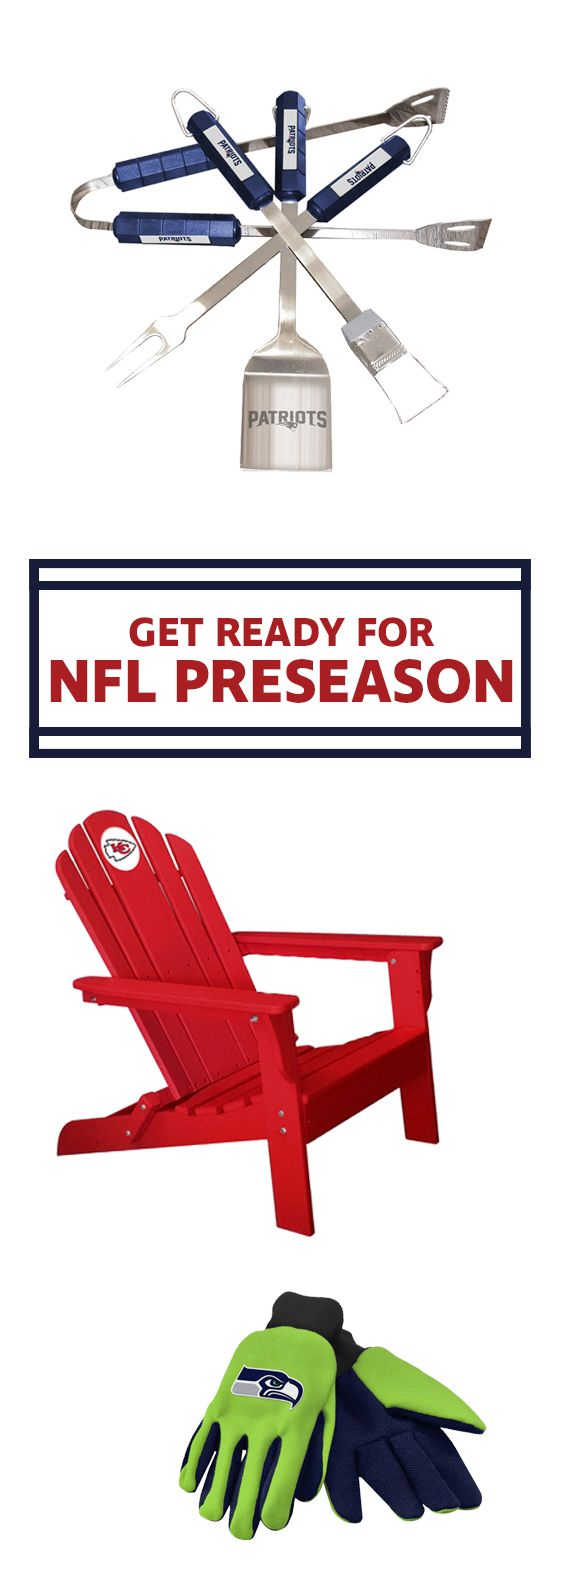 NFL Preseason bbq gear, we've got it.  Get out there and get your grill on!   outdoor furniture, bbq tools, gardening, gardening gloves, patriots, chiefs, seahawks, team sports, outdoor gear